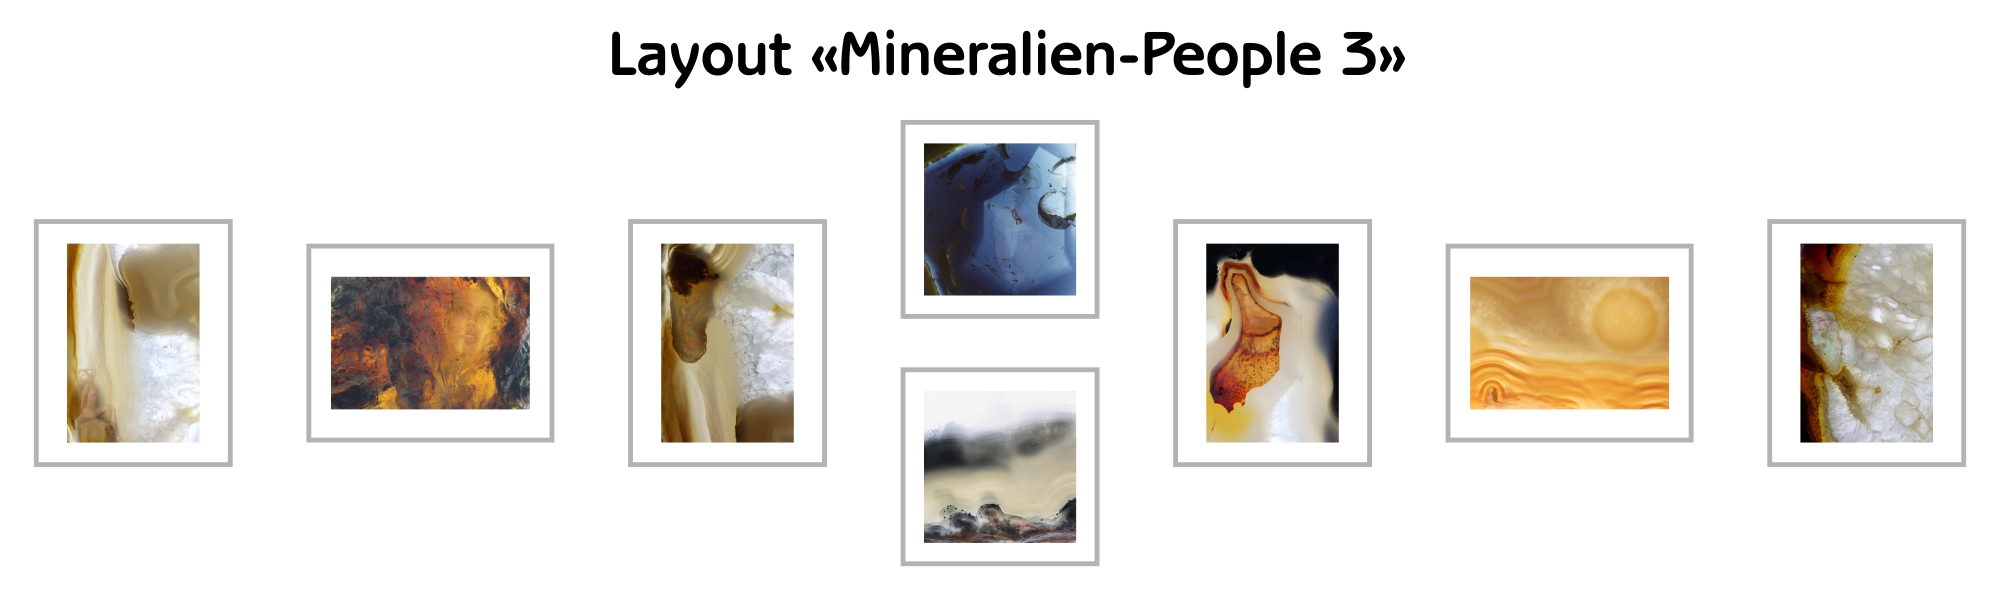 image-10217783-Layout-Mineralien-People-3-8f14e.jpg